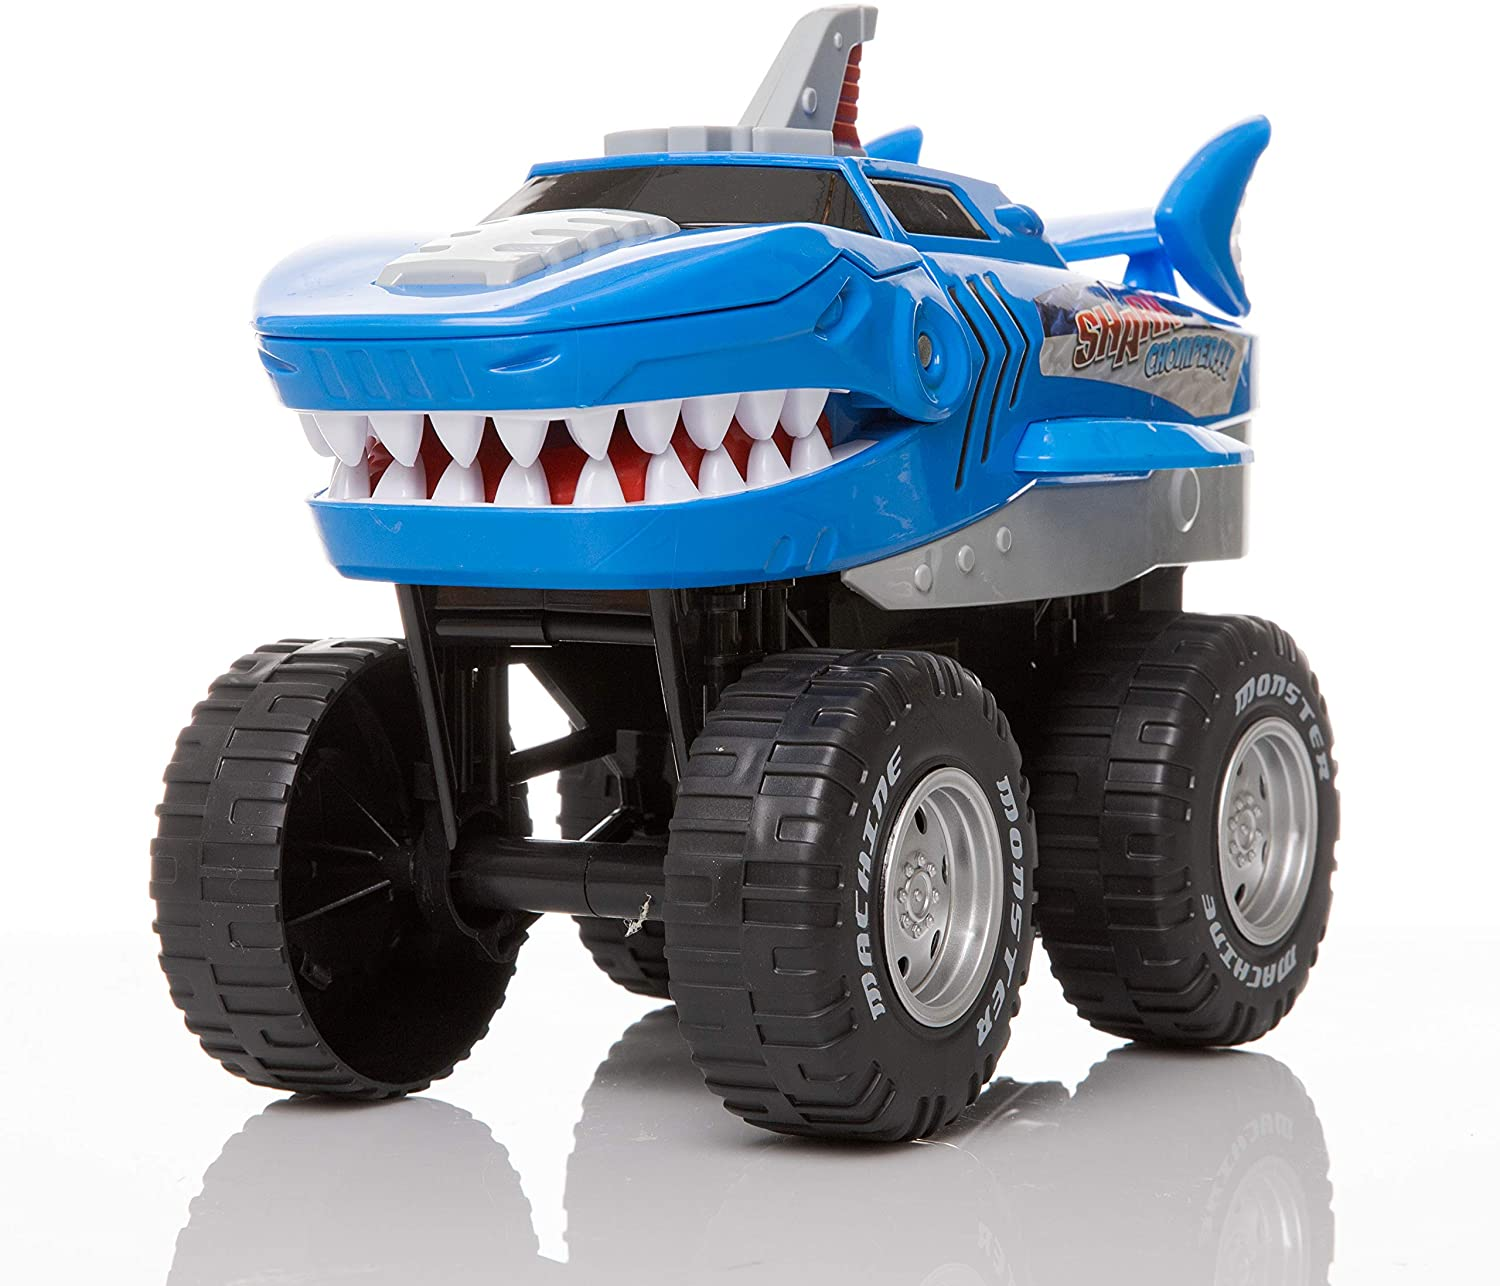 Rugged Racers Monster Trucks for Boys and Girls – Toy Monster Trucks – Shark – Battery Operated Mouth Opening Design – Revving Engine with Sounds and Lights